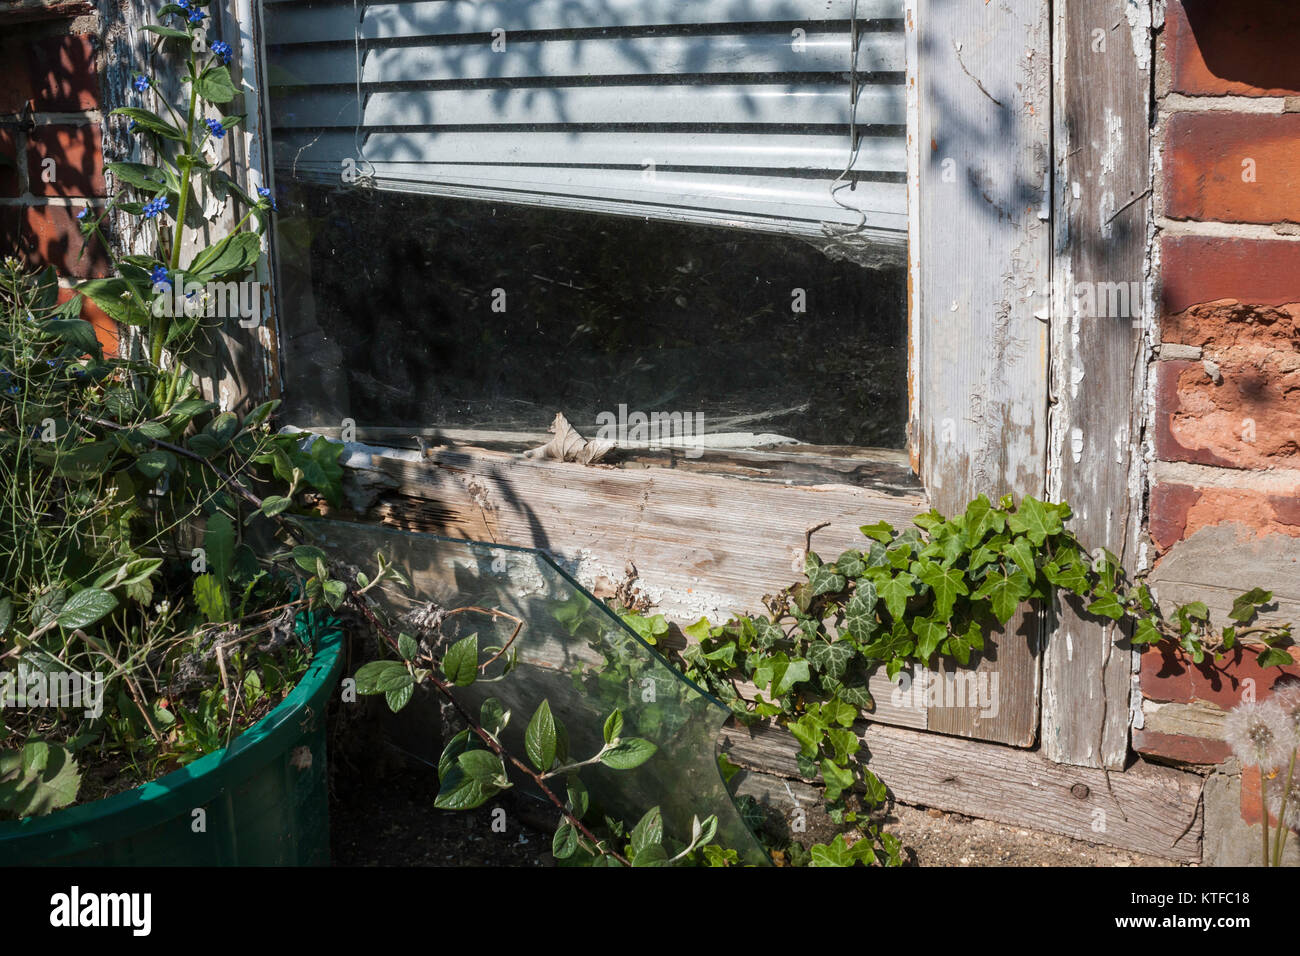 Patio door frame in severe state of dilapidation and over grown with ivy - Stock Image